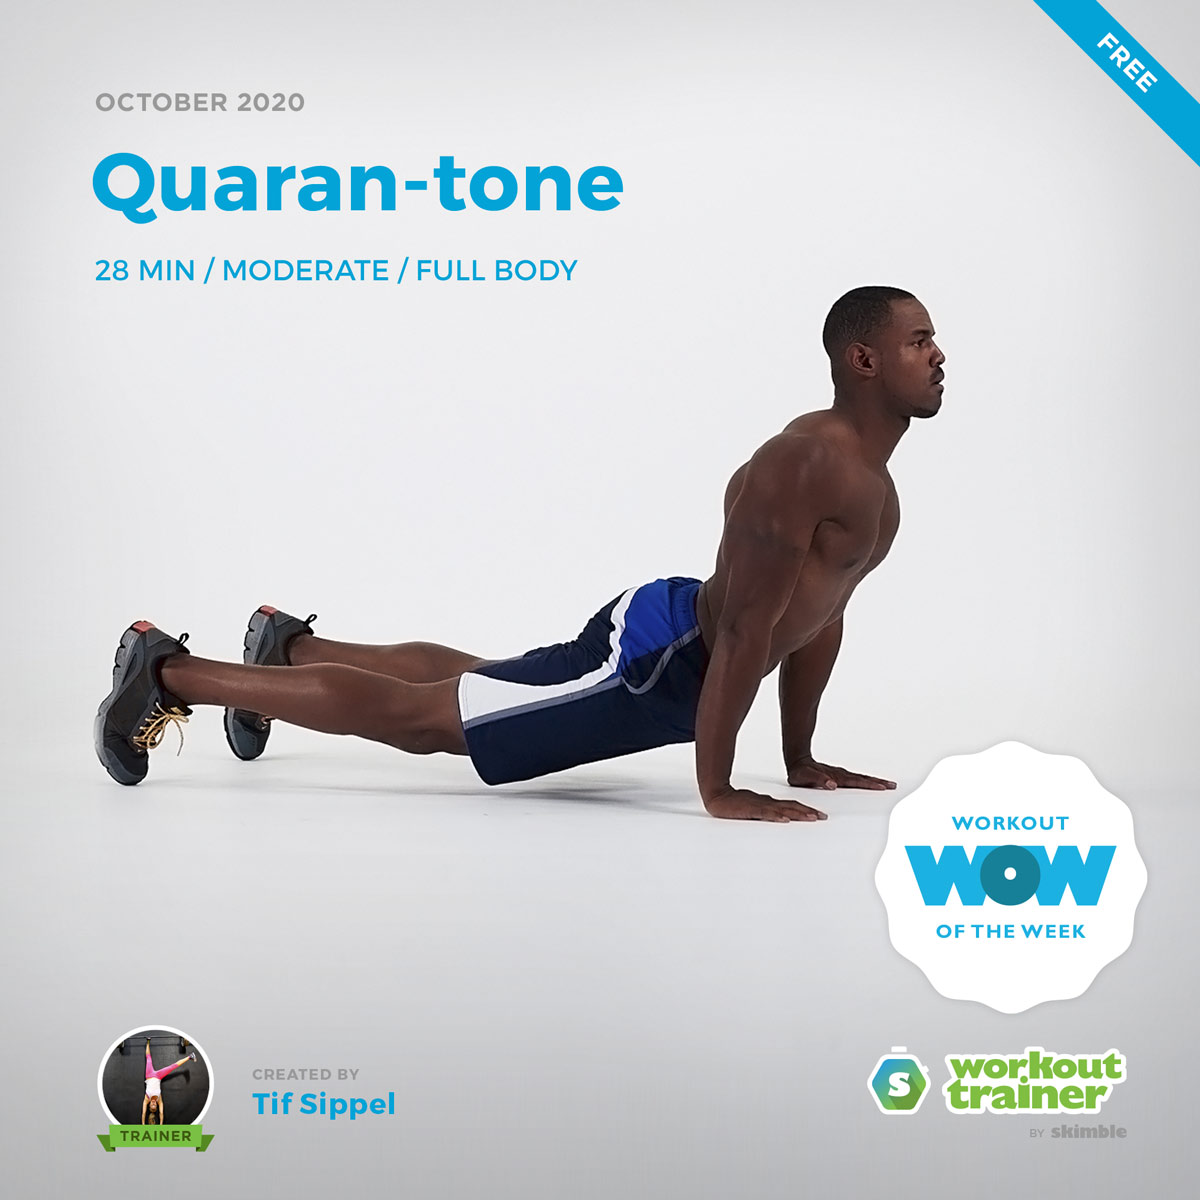 Male Trainer showing us how to do Down Unders exercise